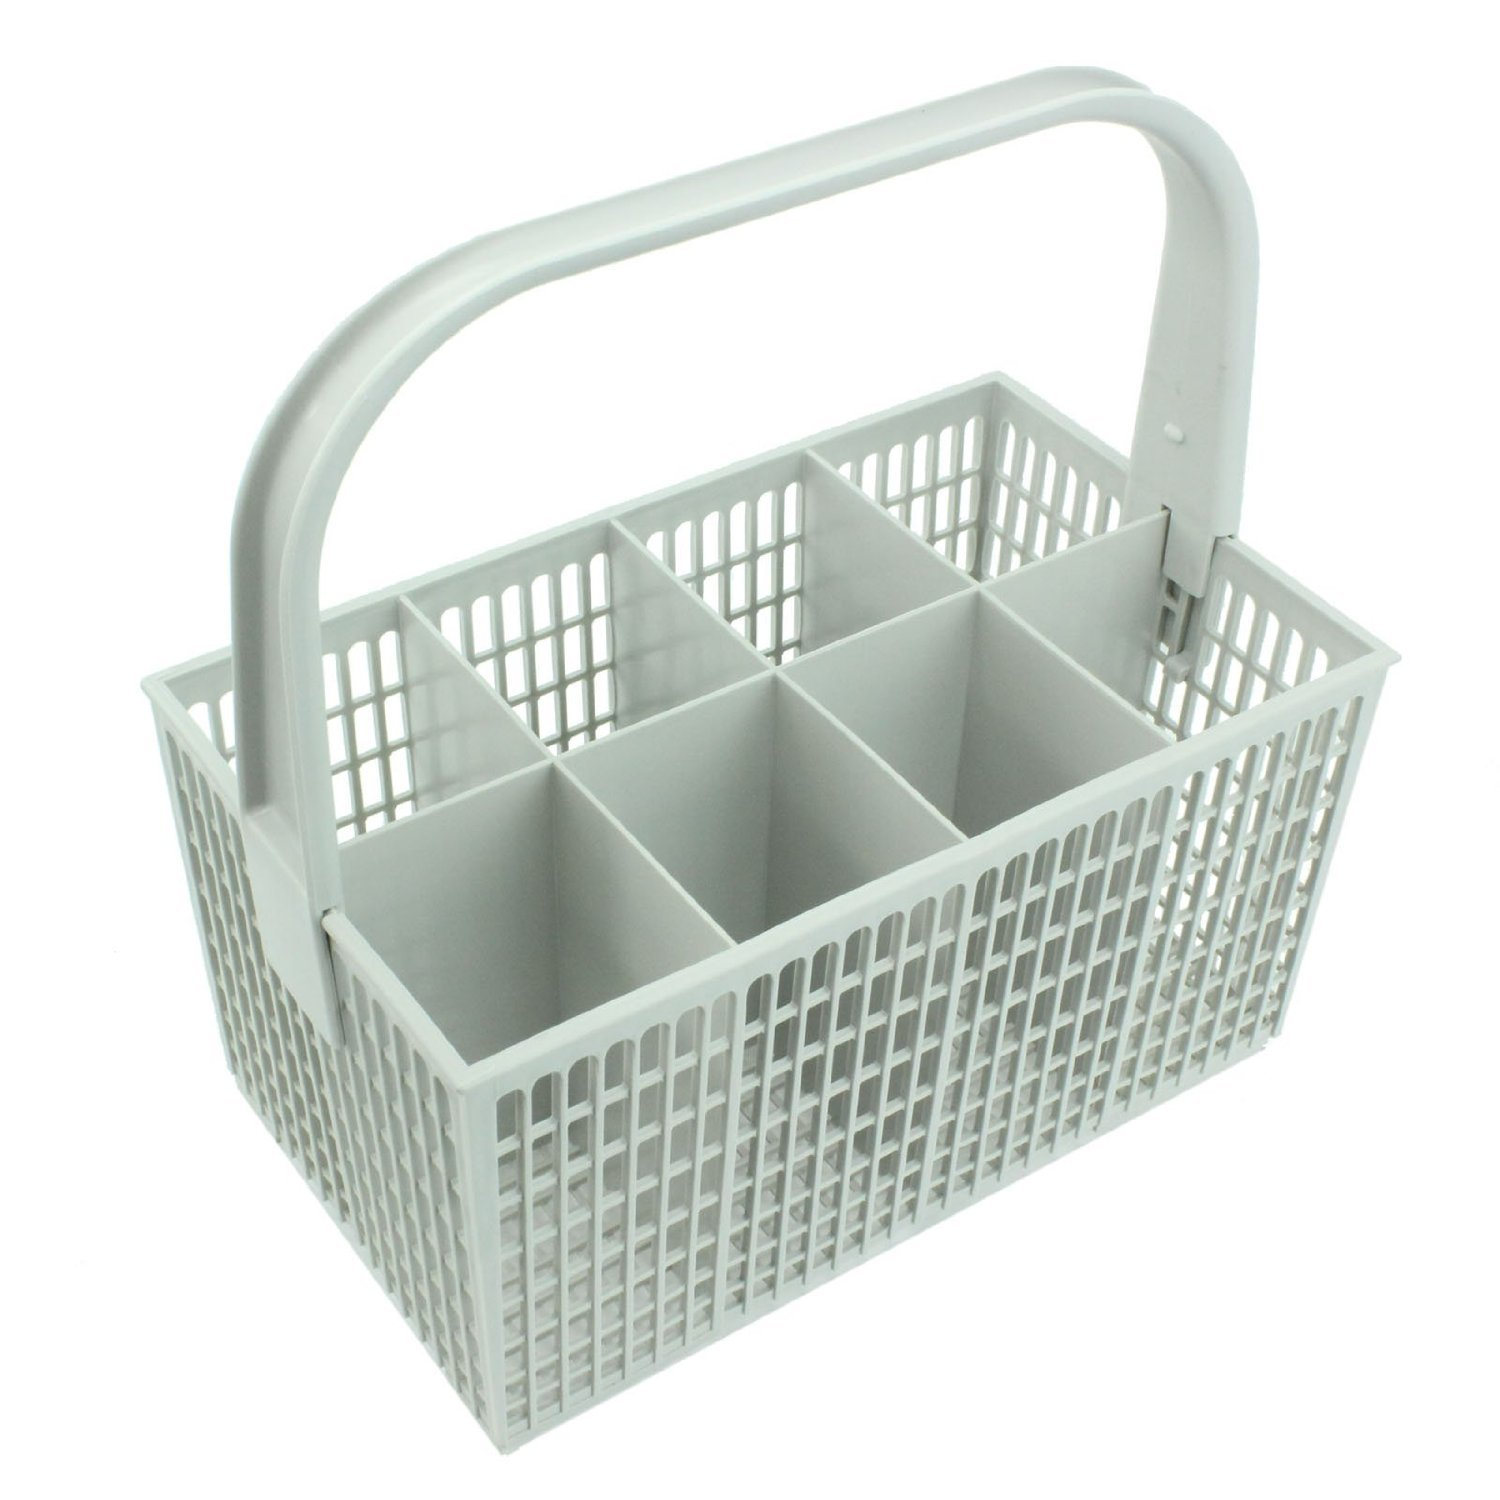 Spares2go Cutlery Basket Cage For Electrolux Dishwasher (White, 237Mm X 137Mm 122Mm)